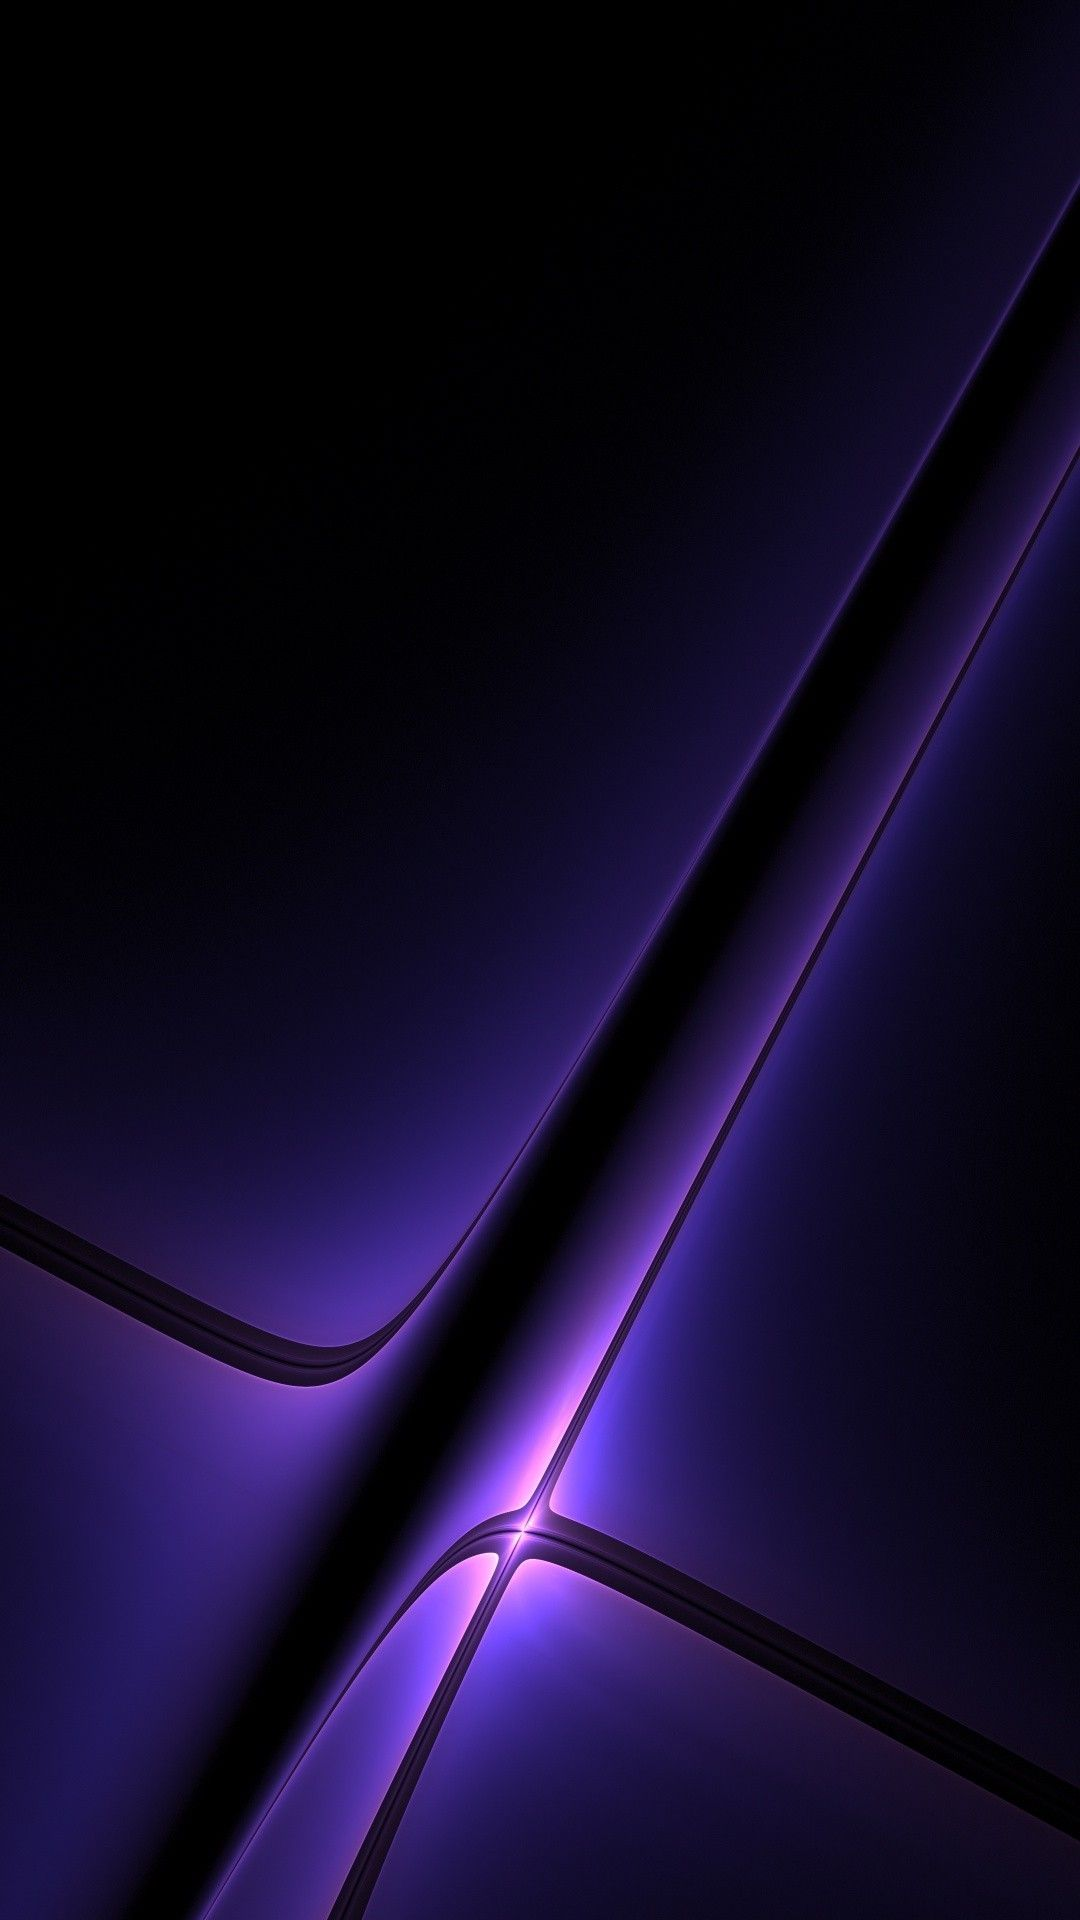 Get Best Purple Phone Wallpaper HD Today by Uploaded by user